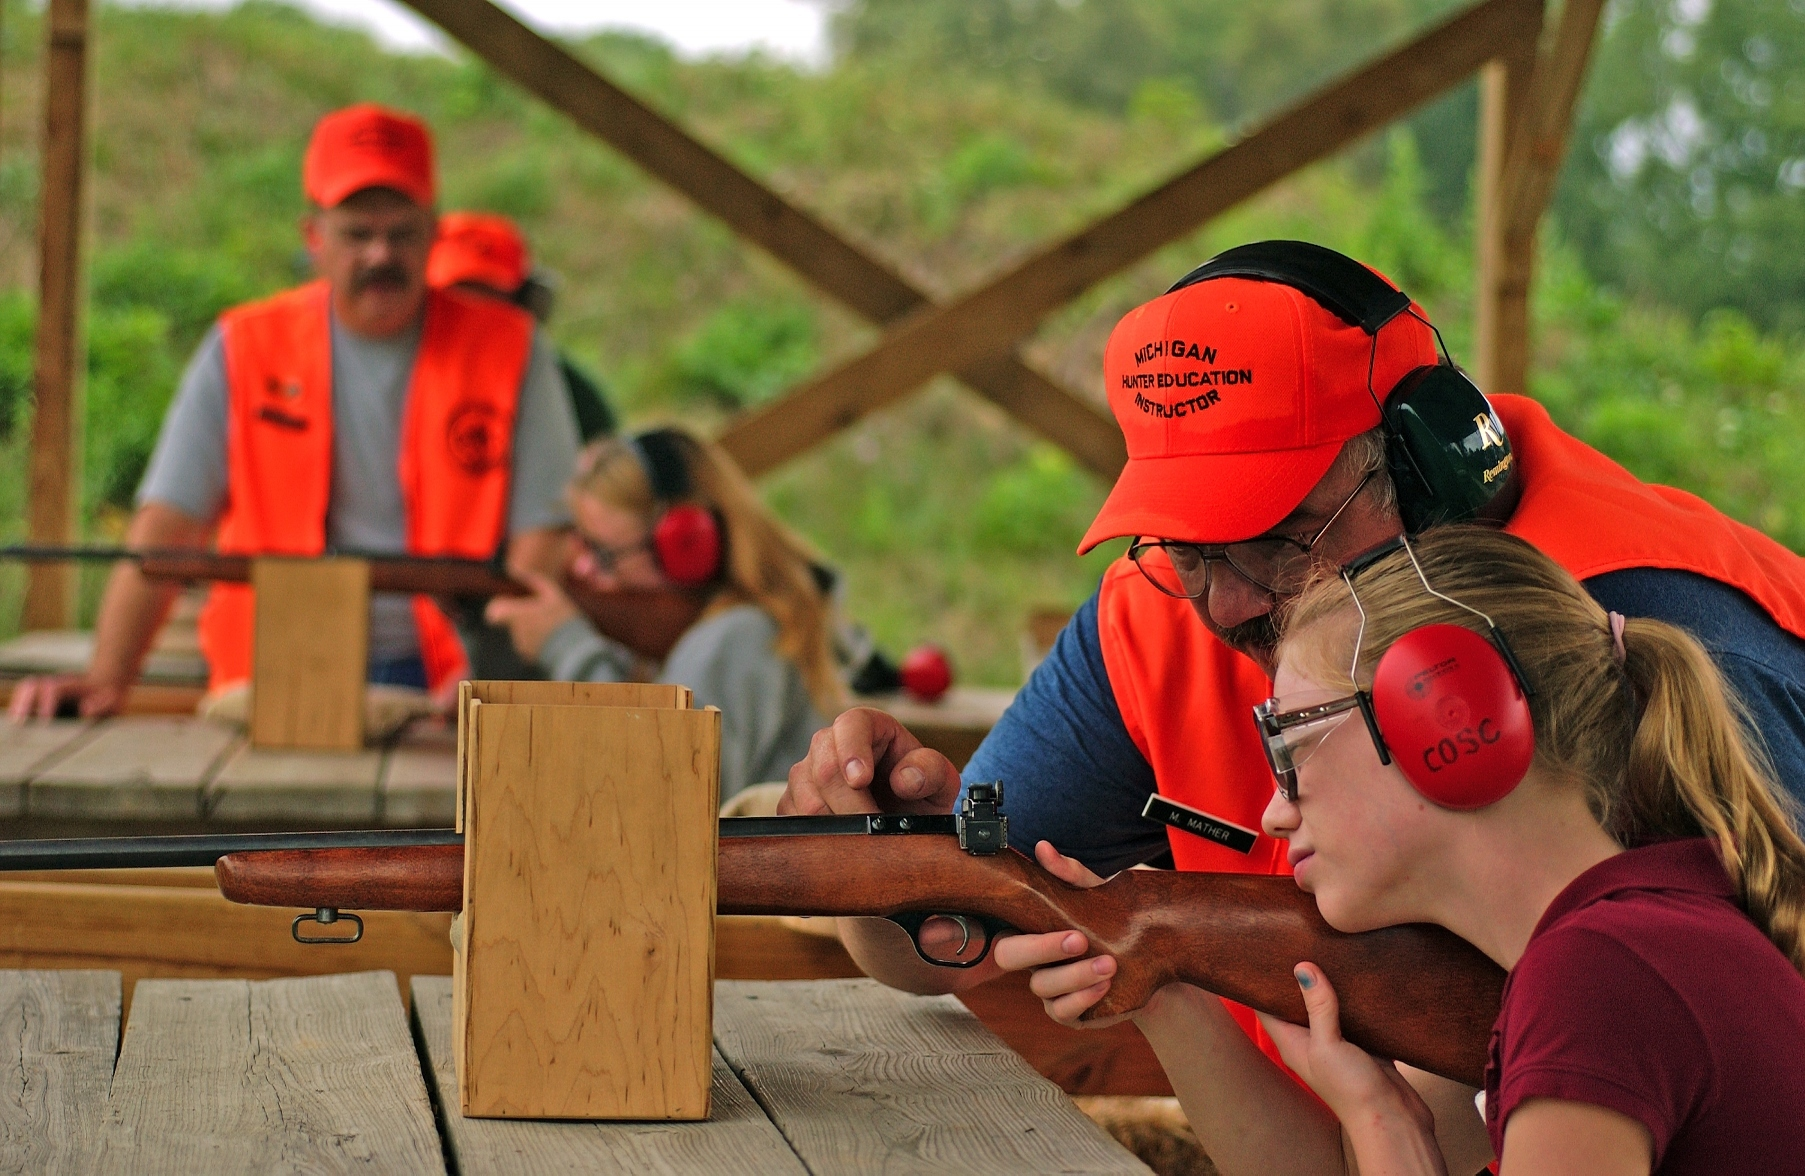 Hunter safety education students learn how to safely and properly use firearms.